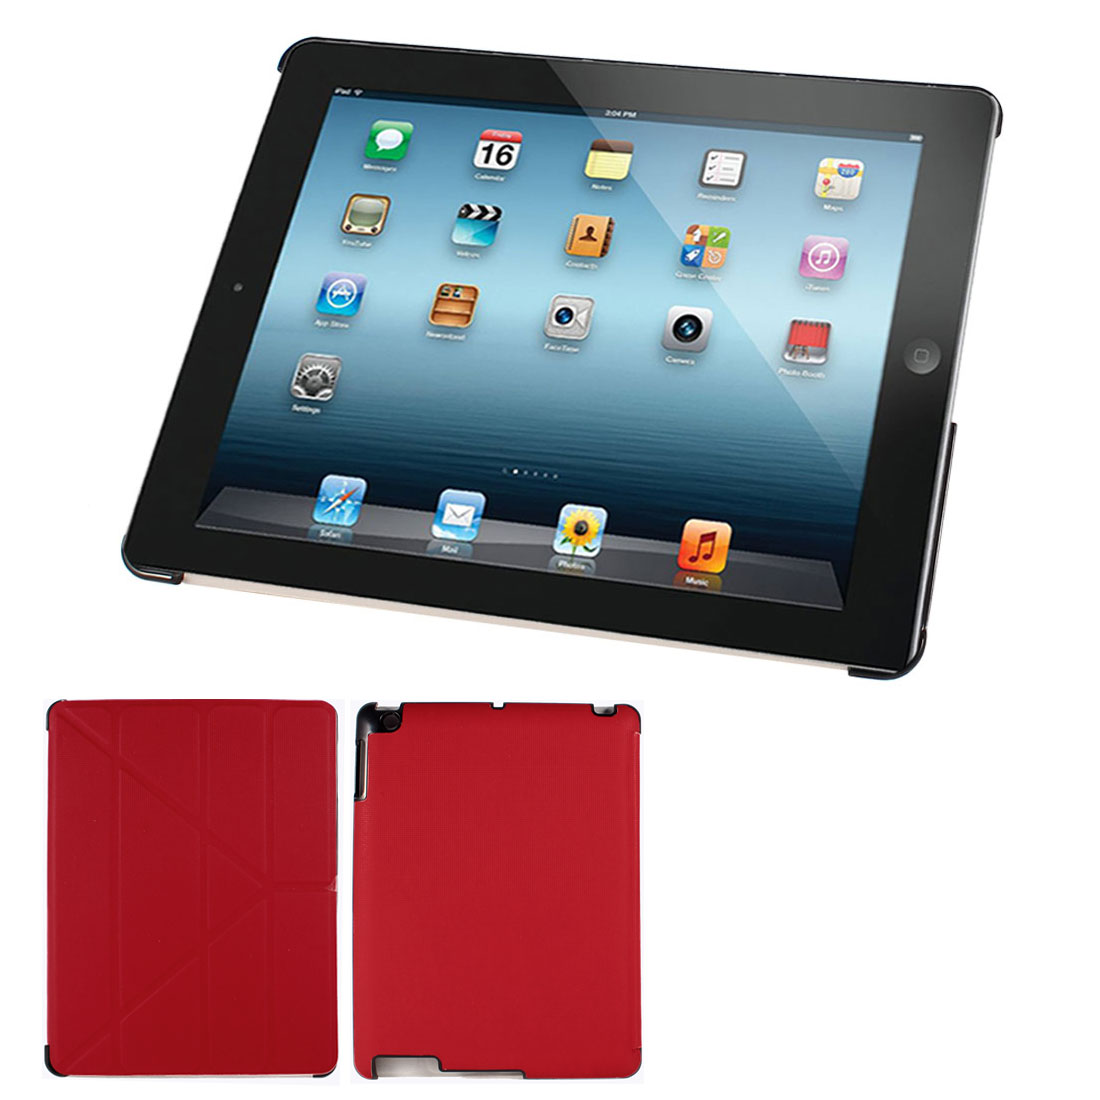 Checkered Prints Folio Book Case Cover Stand Red for Apple iPad 2 3 4